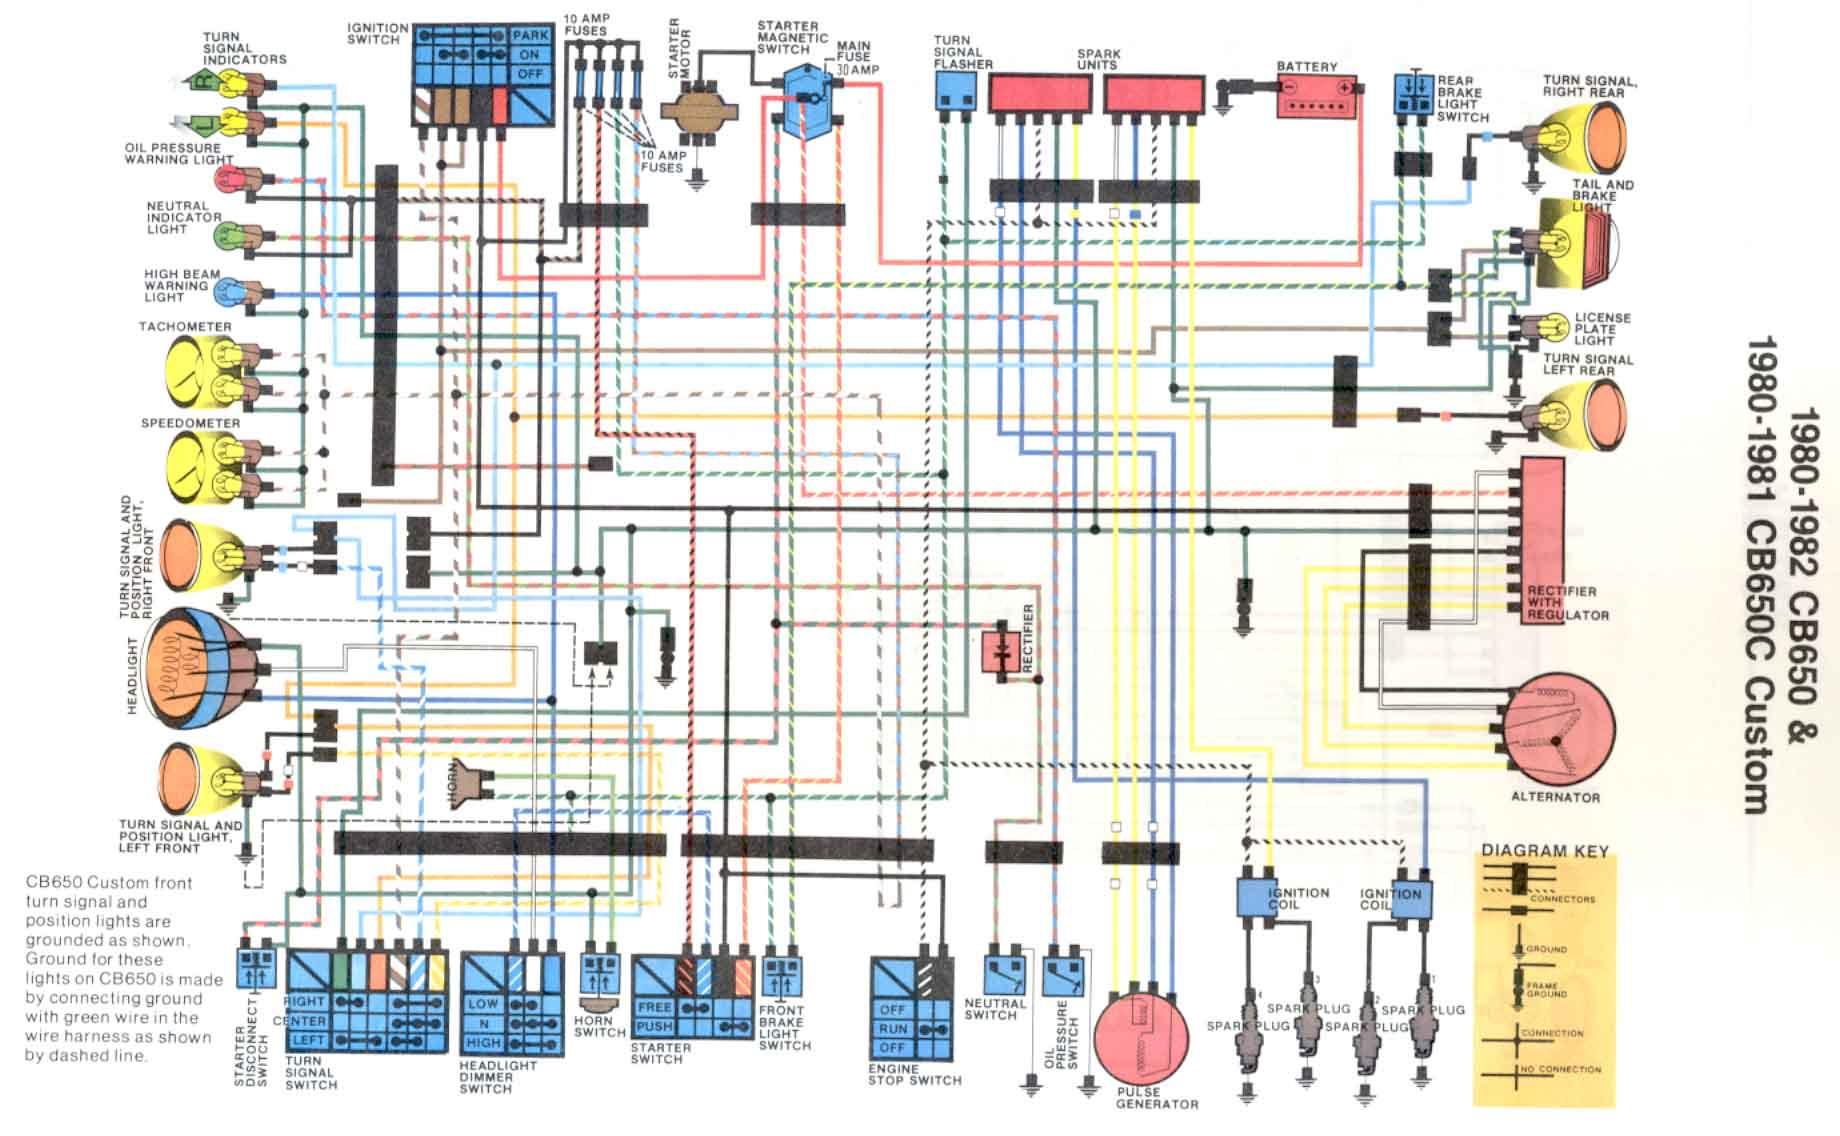 honda wave motorcycle wiring diagram bosch 5 pin relay cbr 600 diagramcbr